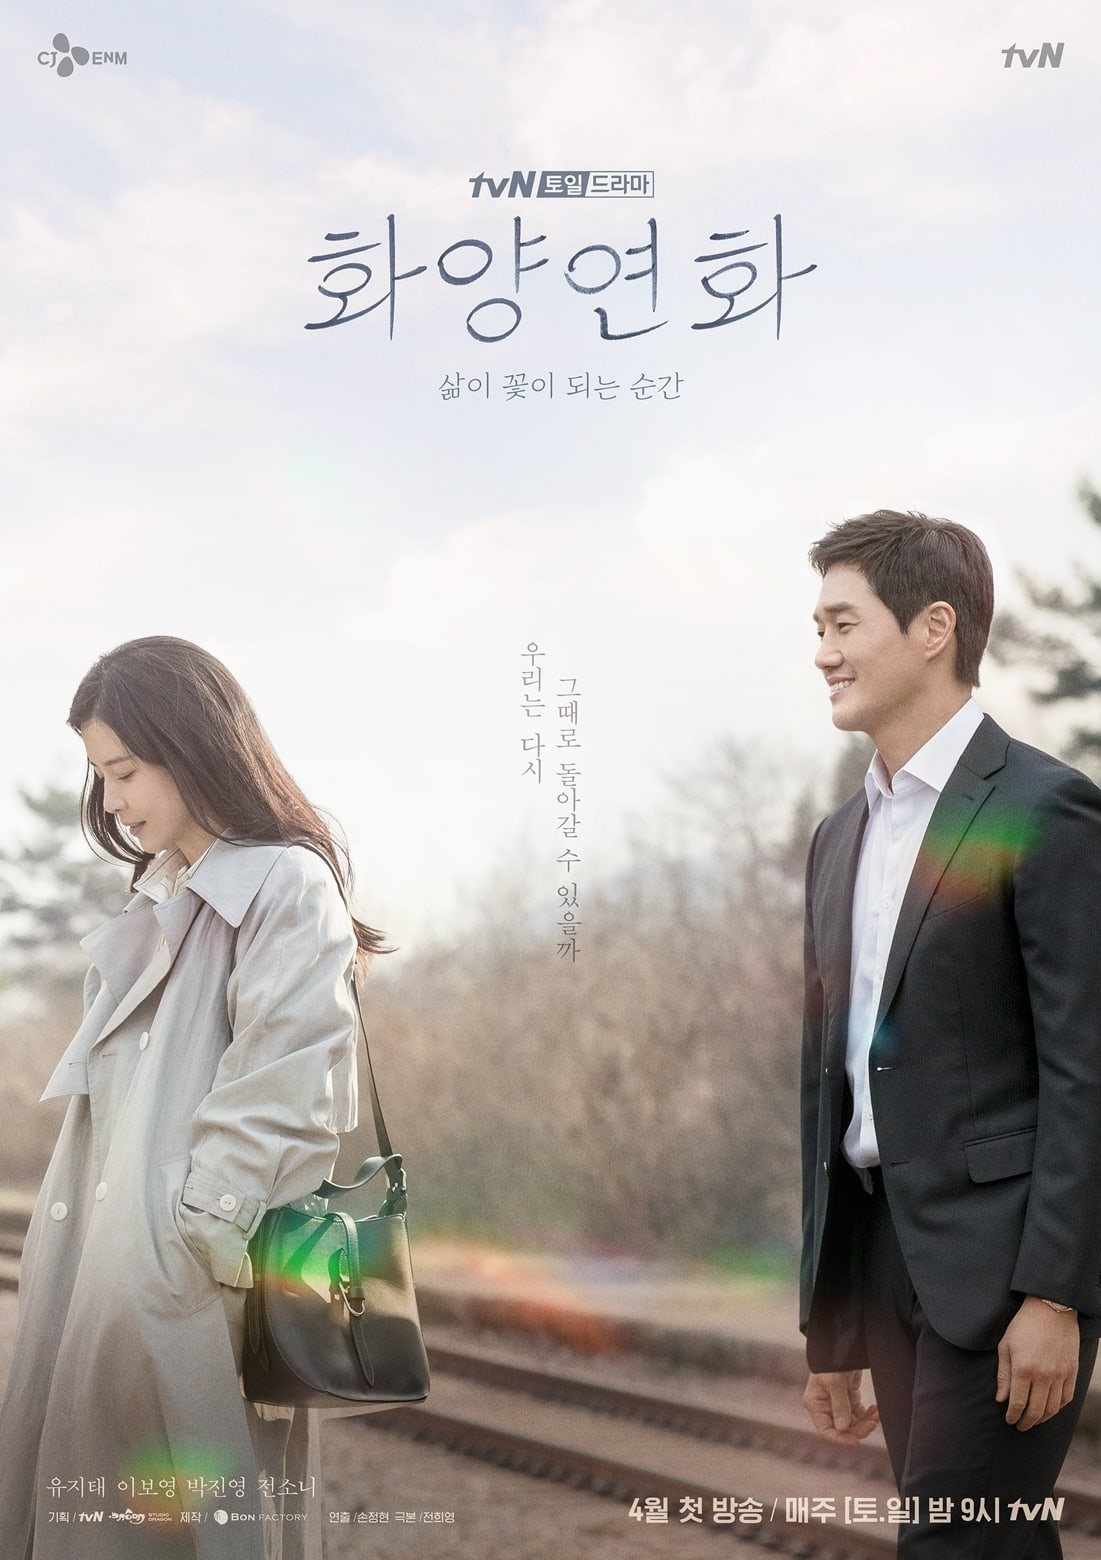 When My Love Blooms 2020 Drama Cast amp Summary